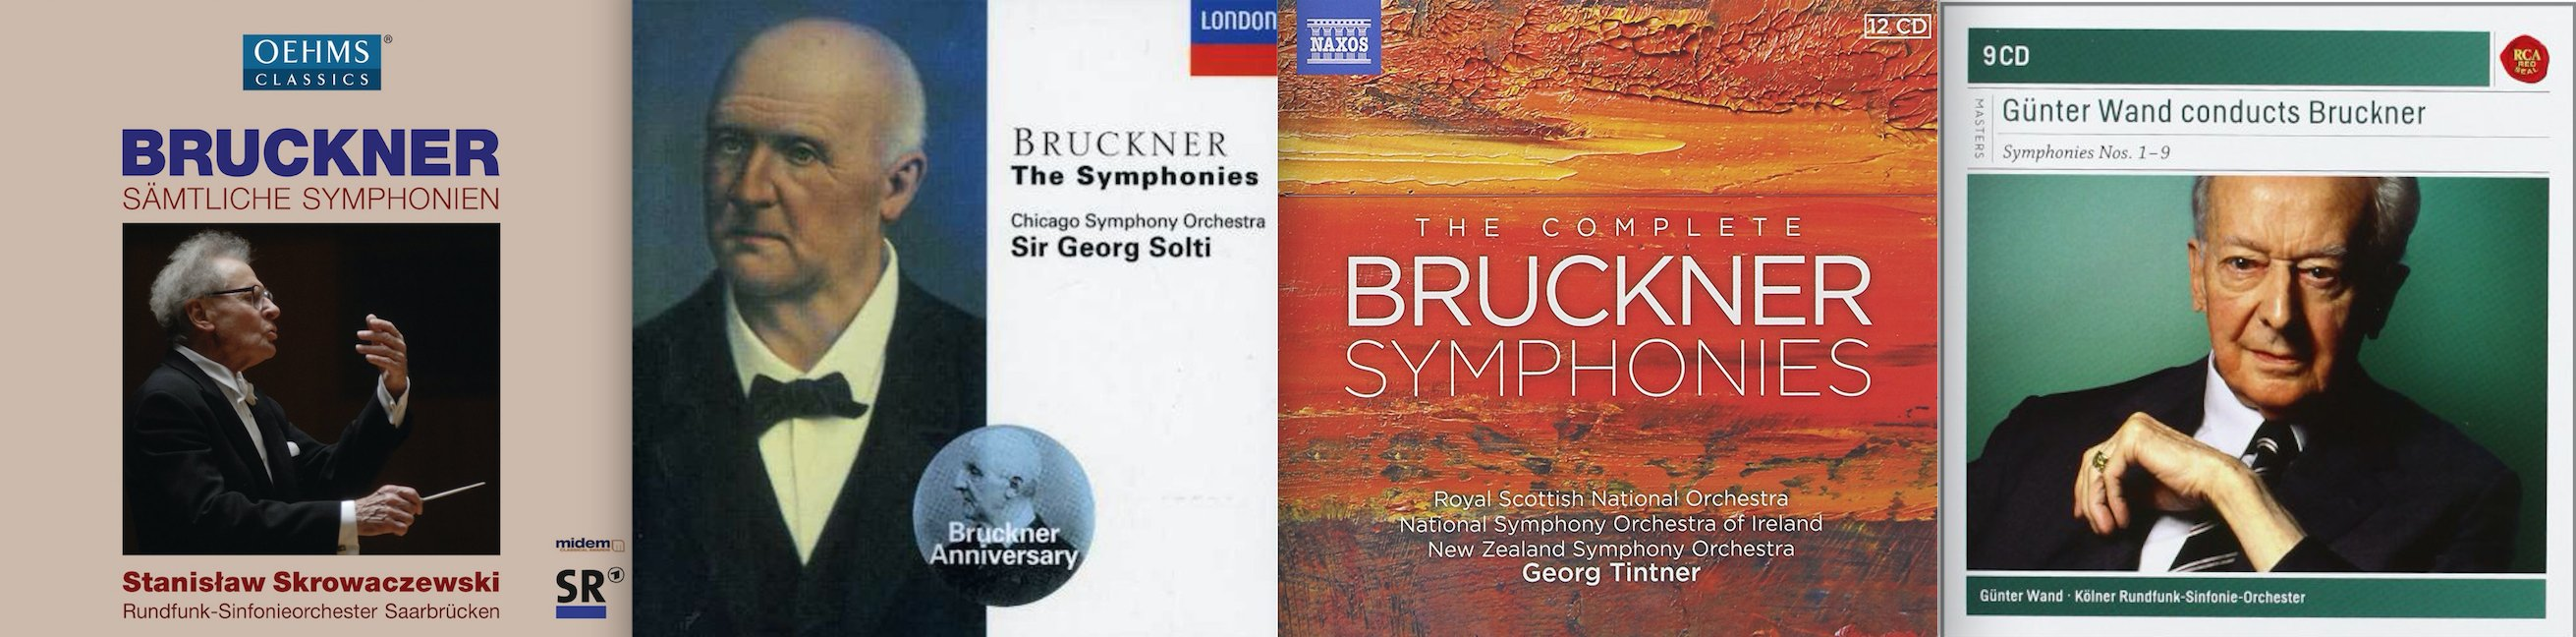 Evaluating Symphonies 1-9 From 16 CD Box Sets